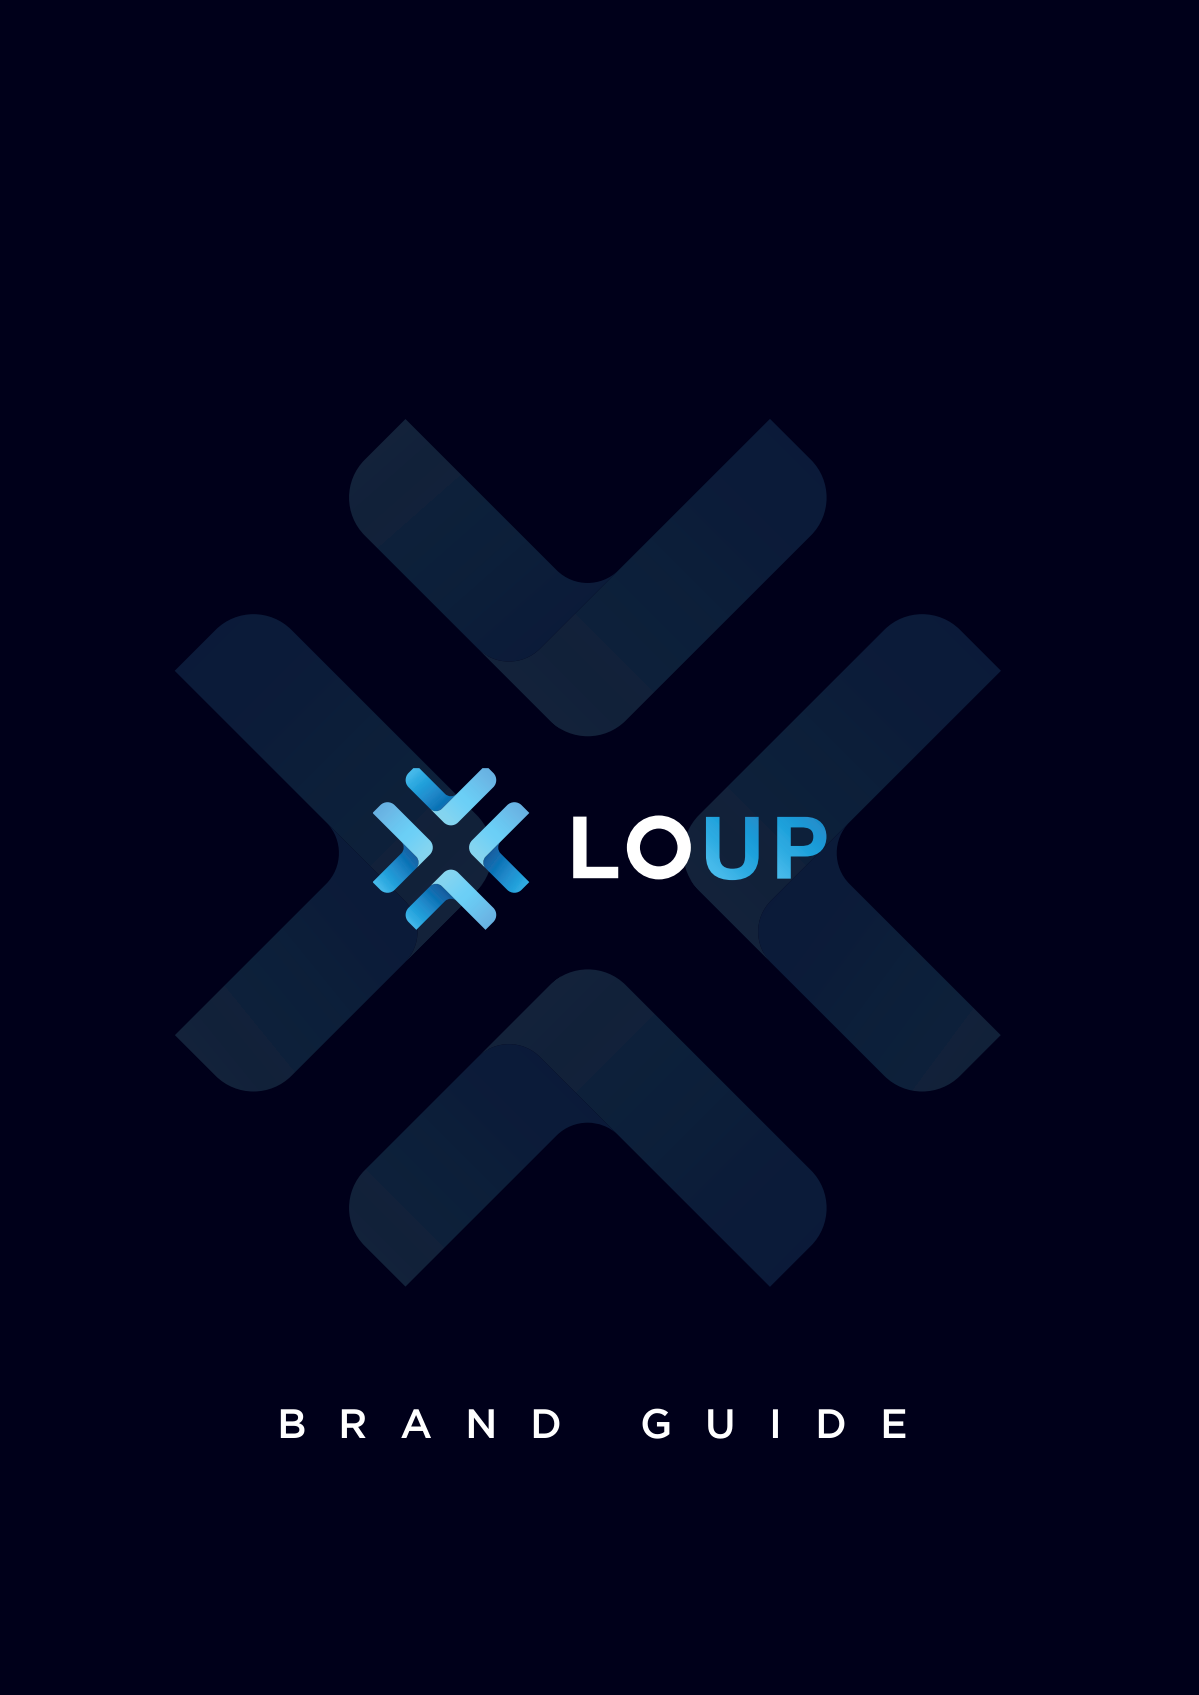 Loup Brand Guidelines